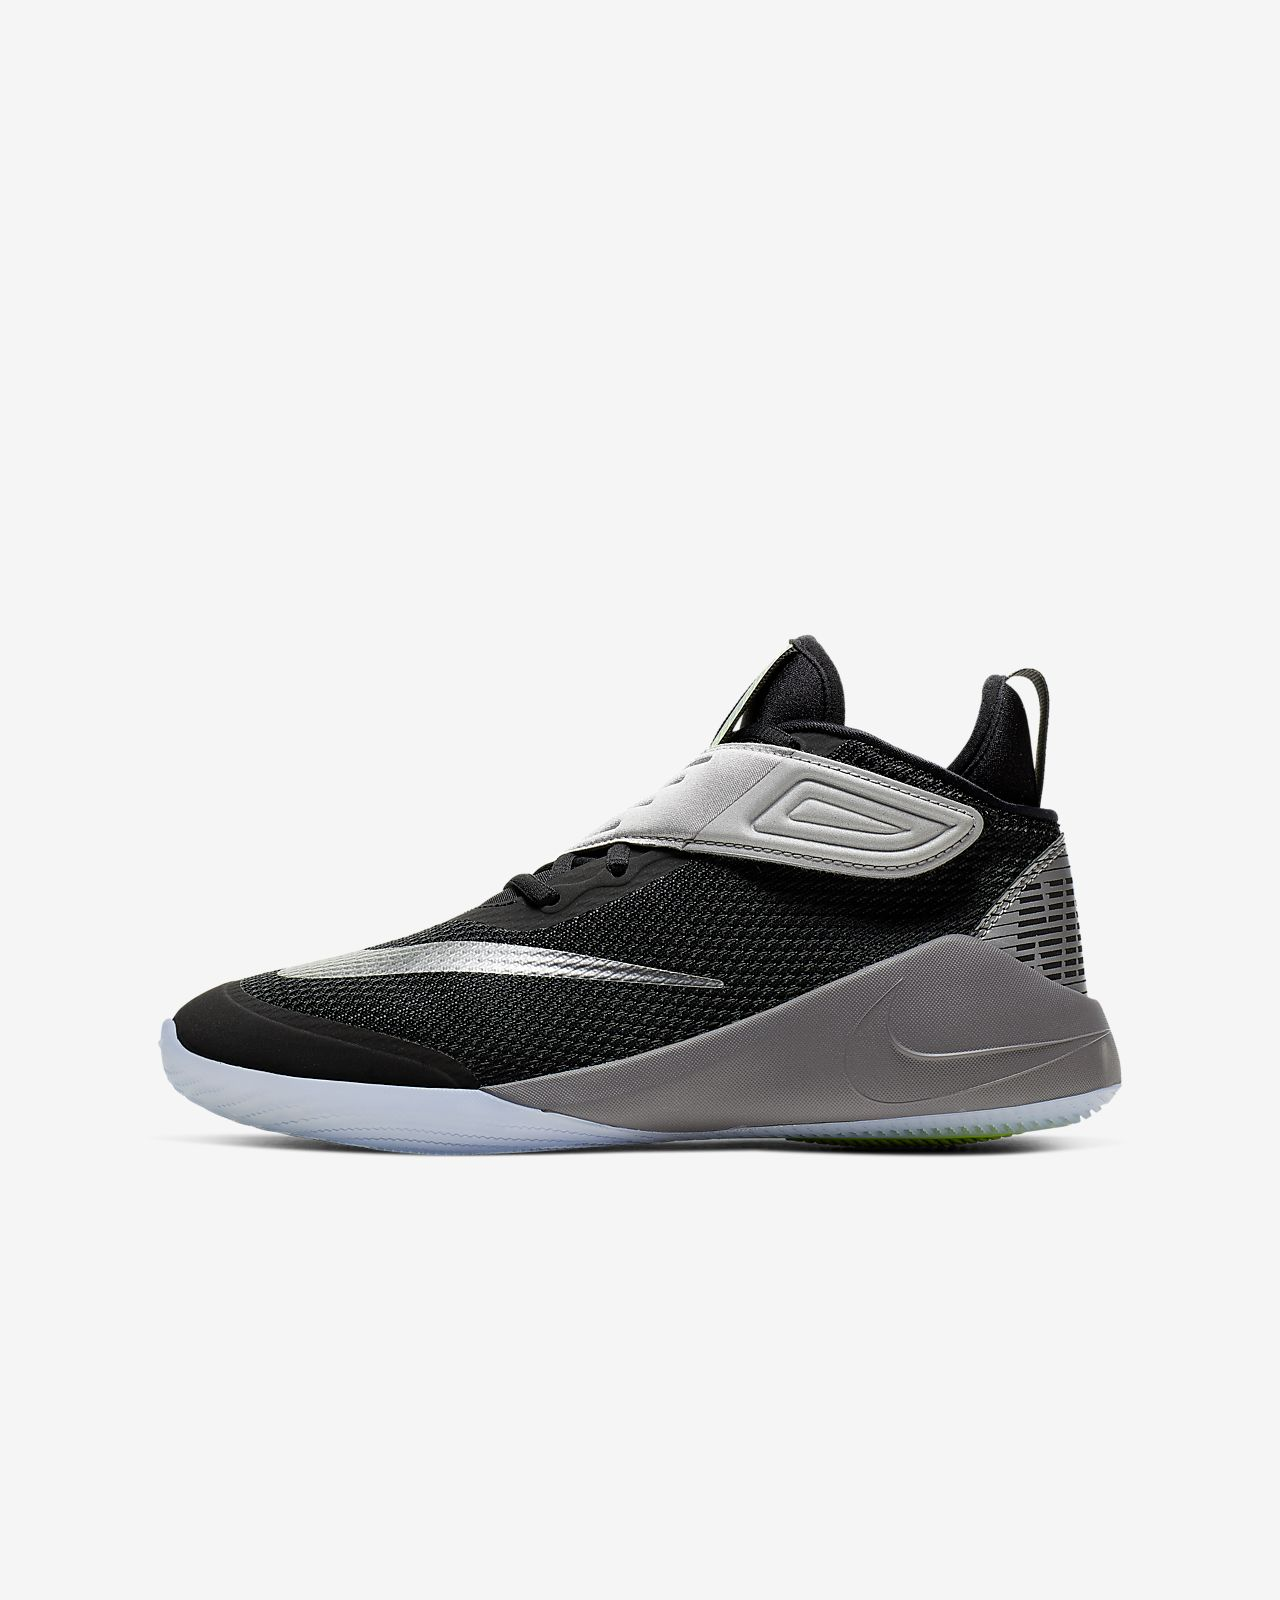 Nike Future Flight 2 (GS) 大童篮球童鞋